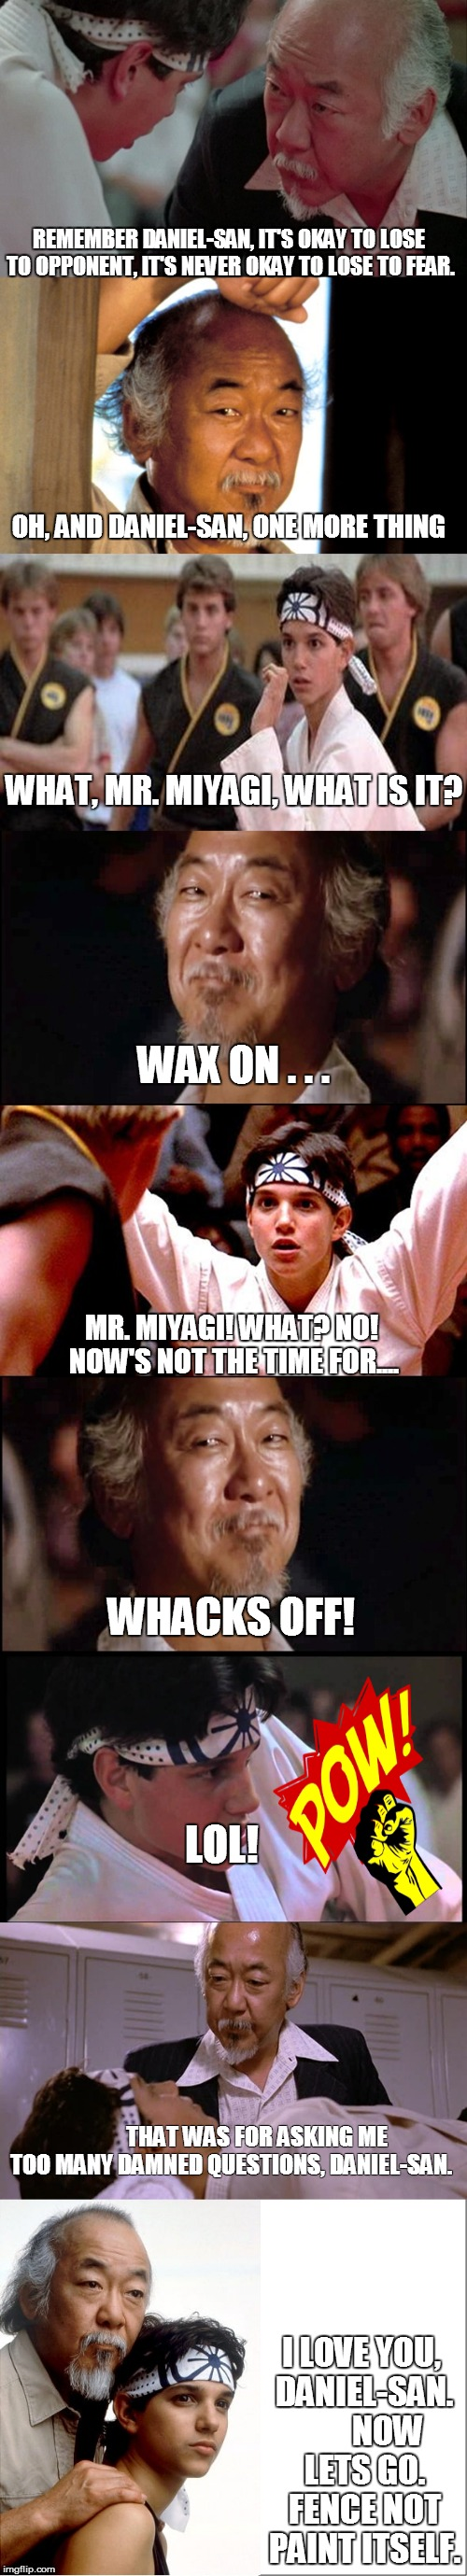 Wax on...... | REMEMBER DANIEL-SAN, IT'S OKAY TO LOSE TO OPPONENT, IT'S NEVER OKAY TO LOSE TO FEAR. I LOVE YOU, DANIEL-SAN.      NOW LETS GO. FENCE NOT P | image tagged in karate kid,mr miyagi,daniel-san,memes | made w/ Imgflip meme maker